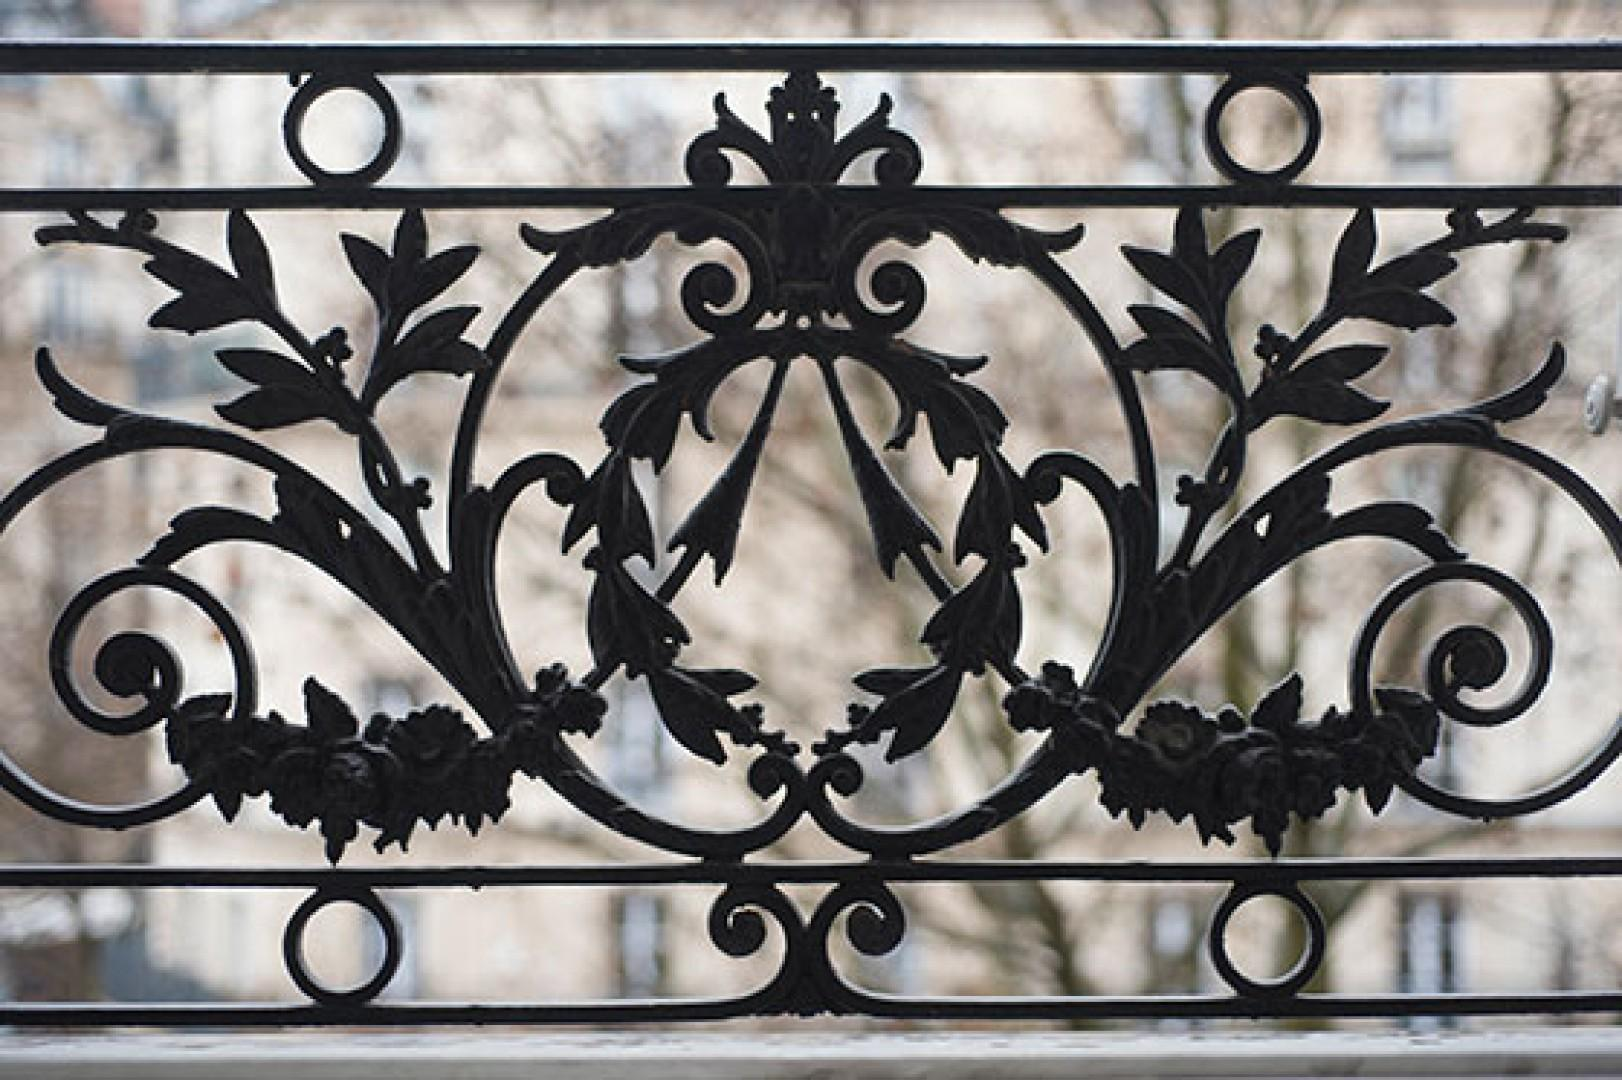 The apartment is filled with chic Parisian touches, like this iron grillwork on the window.